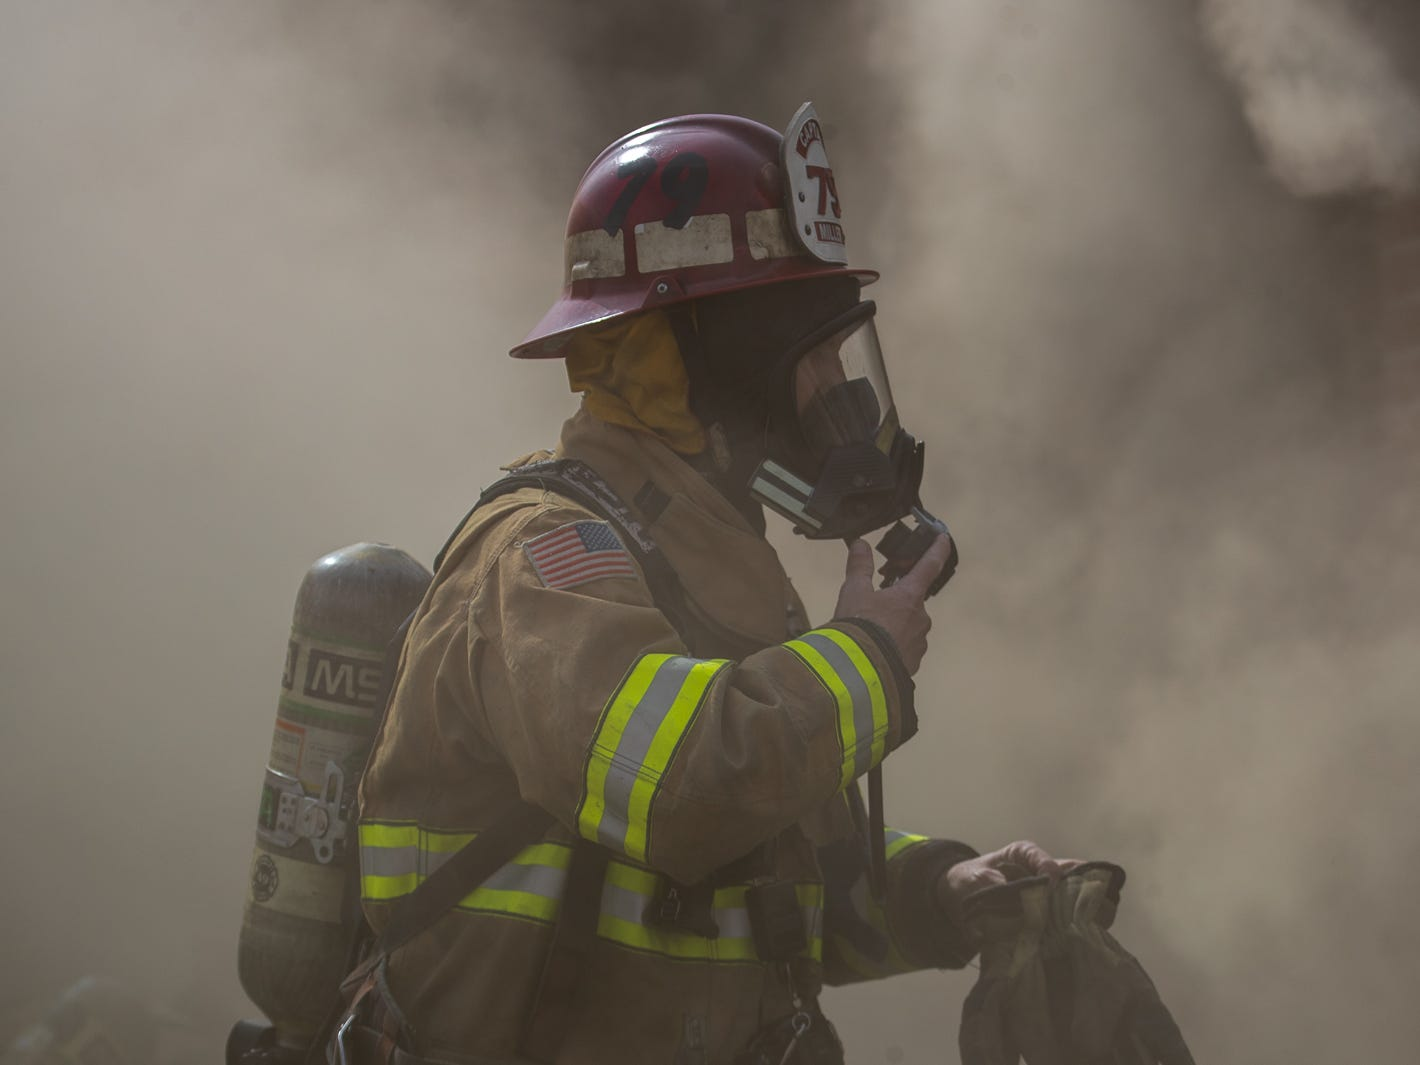 Captain Geoff Miller gears up to begin the initial interior attack at the scene of a house fire on the 100 block of Mumma Ave., Saturday, March 30, 2019, in Penn Township. No one was injured in the fire, which appears to have been an accidental fire in the kitchen, said Hanover Area Fire & Rescue Chief Tony Clousher.